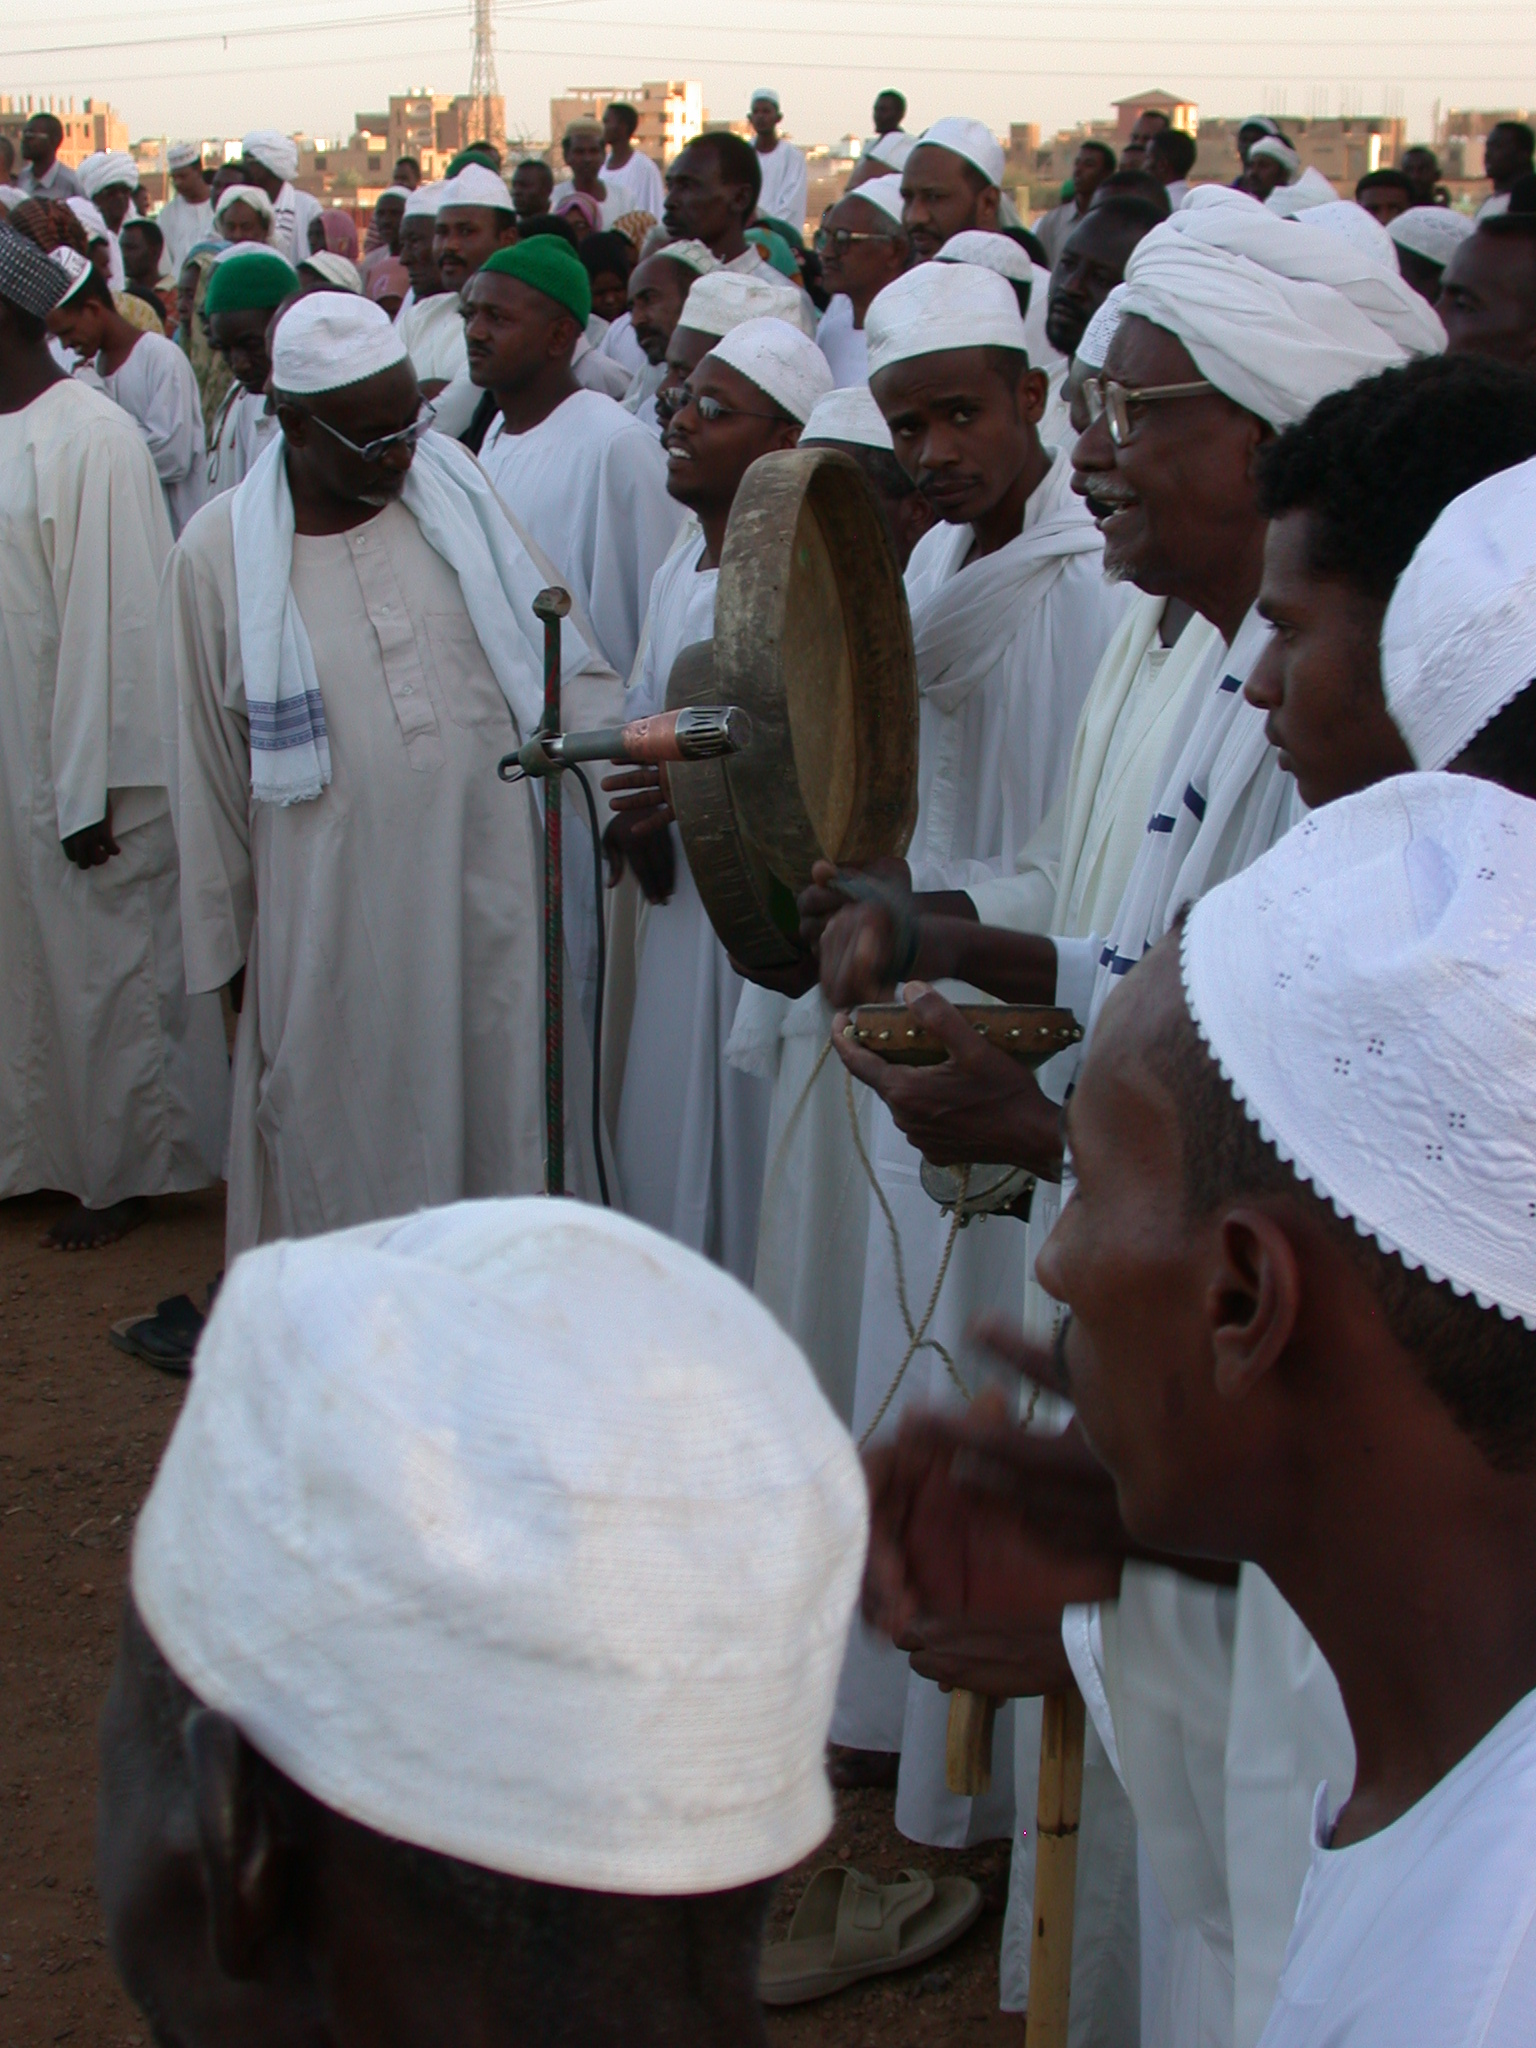 Drummers and Chanters at Sufi Dancing Site, Omdurman, Sudan